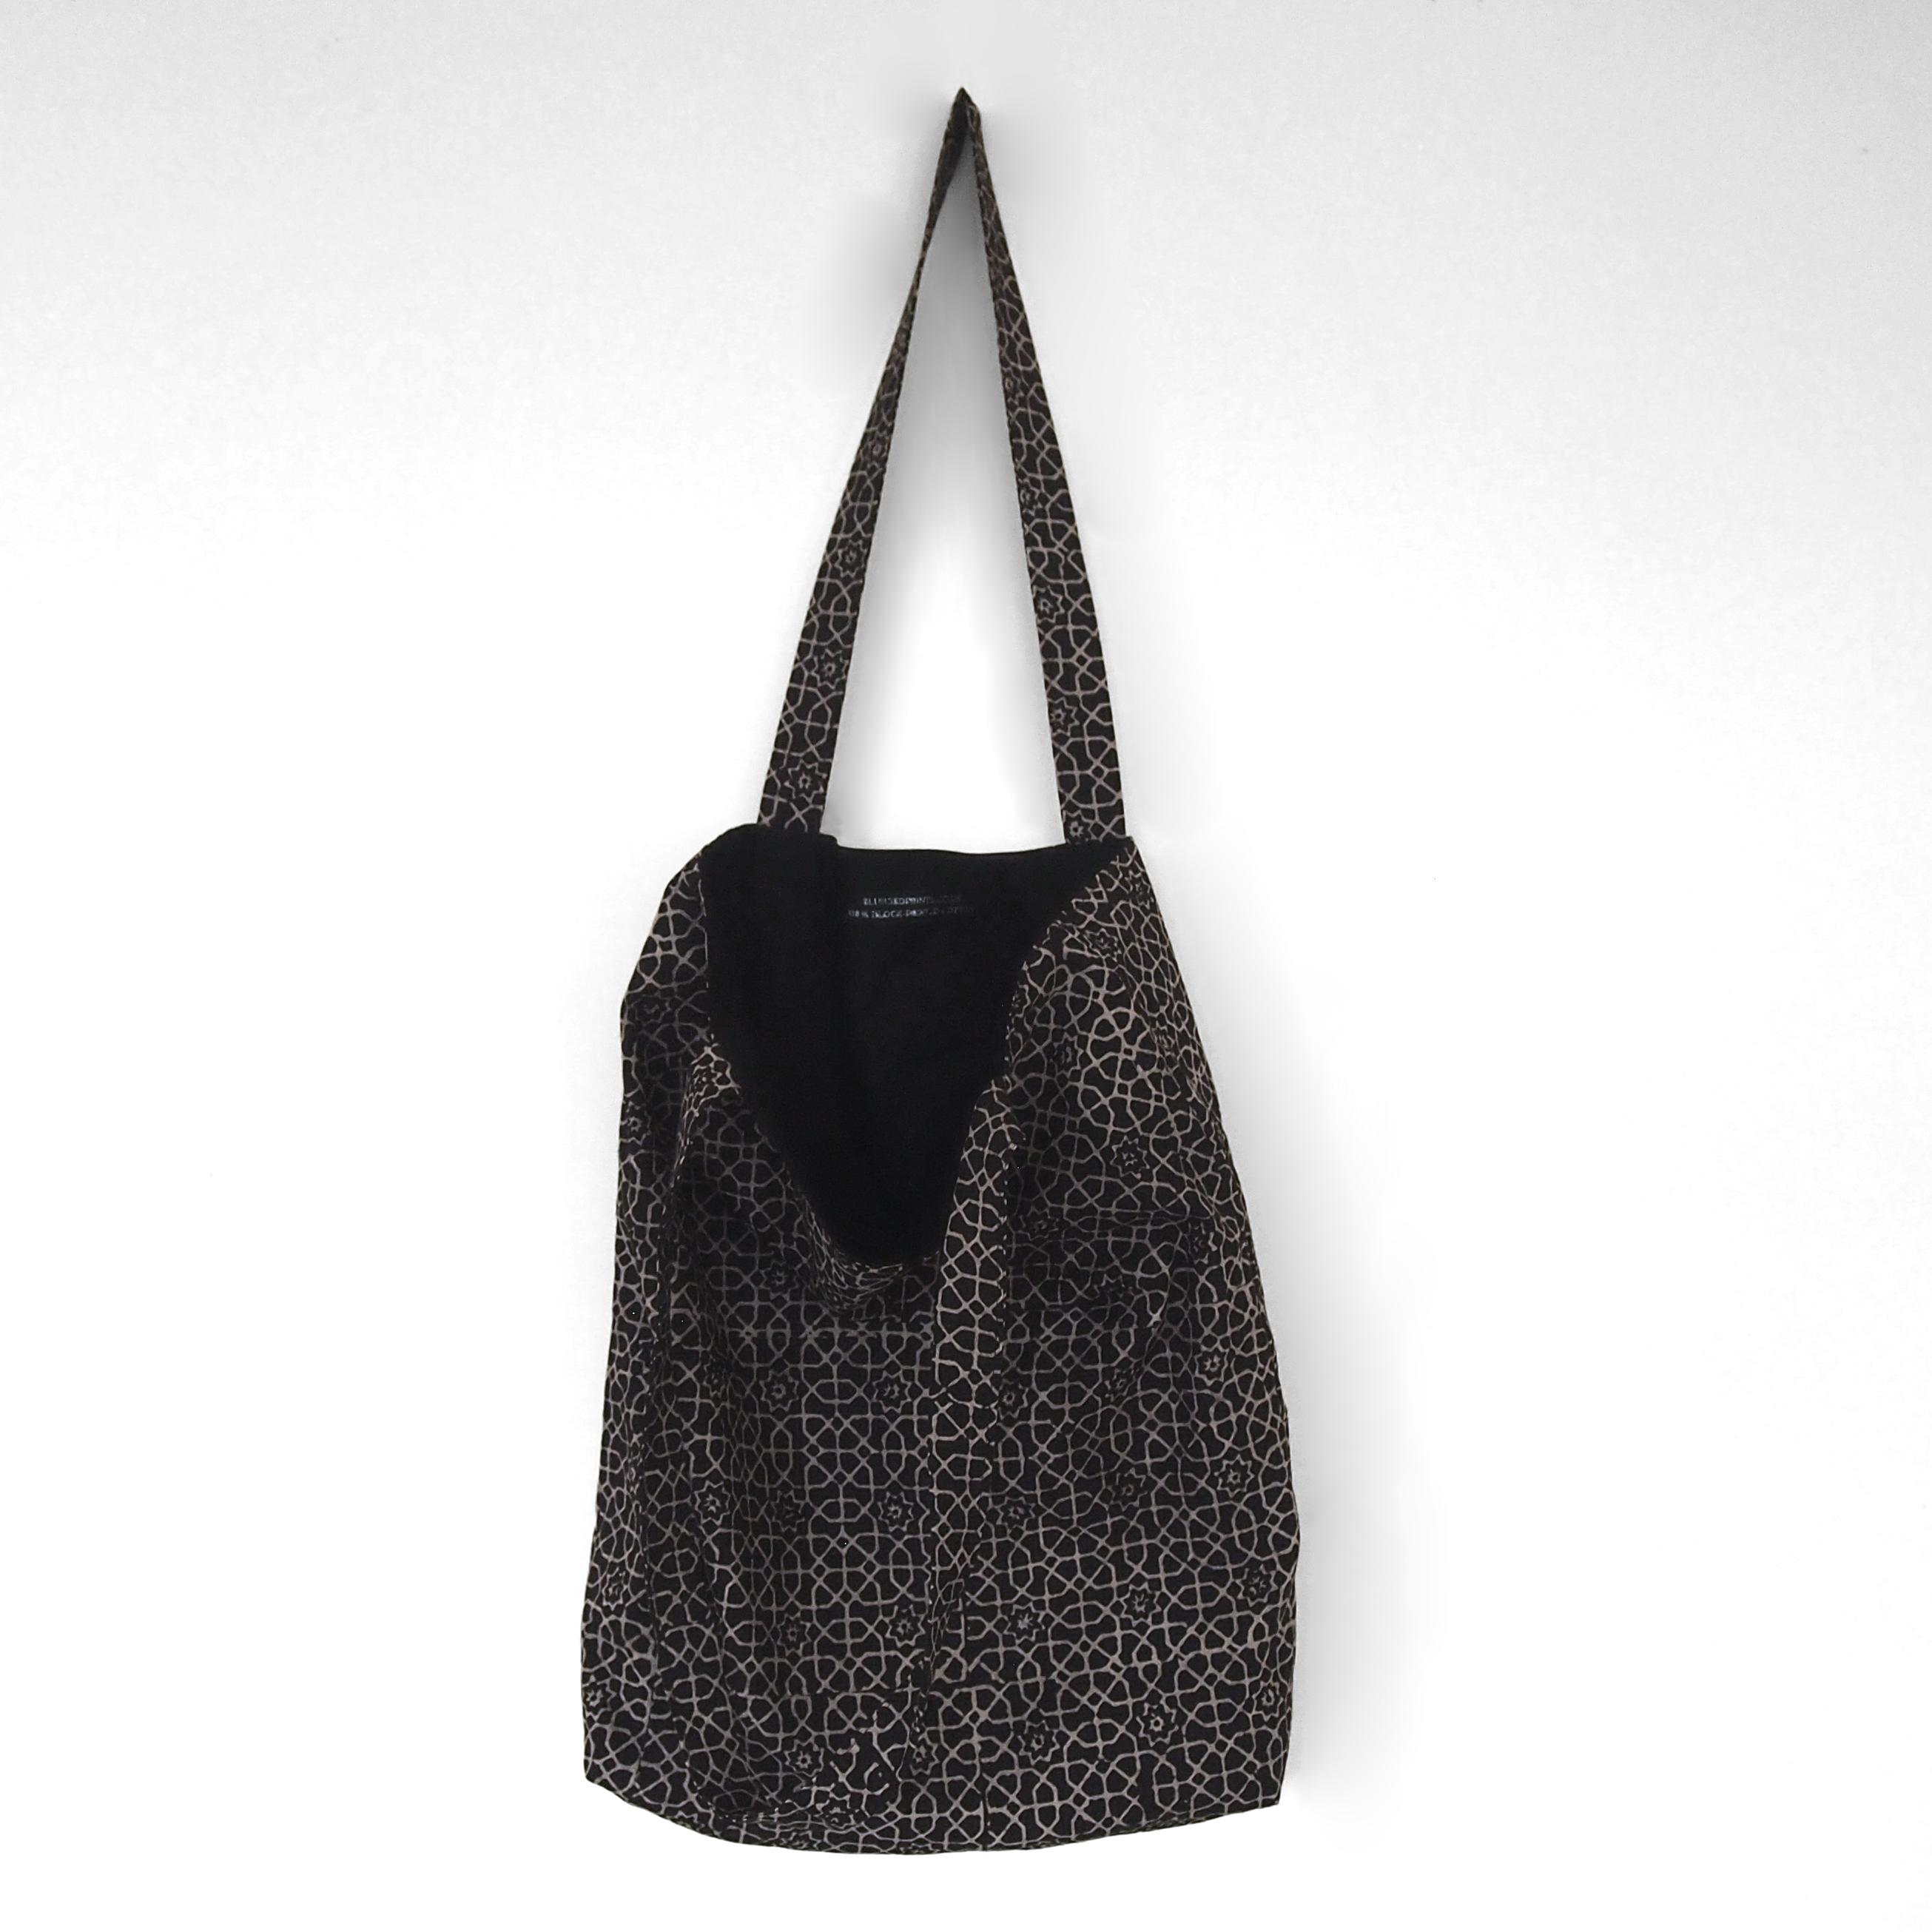 block printed cotton tote bag, natural dye, black, beige octagon design, lined with black cotton, open